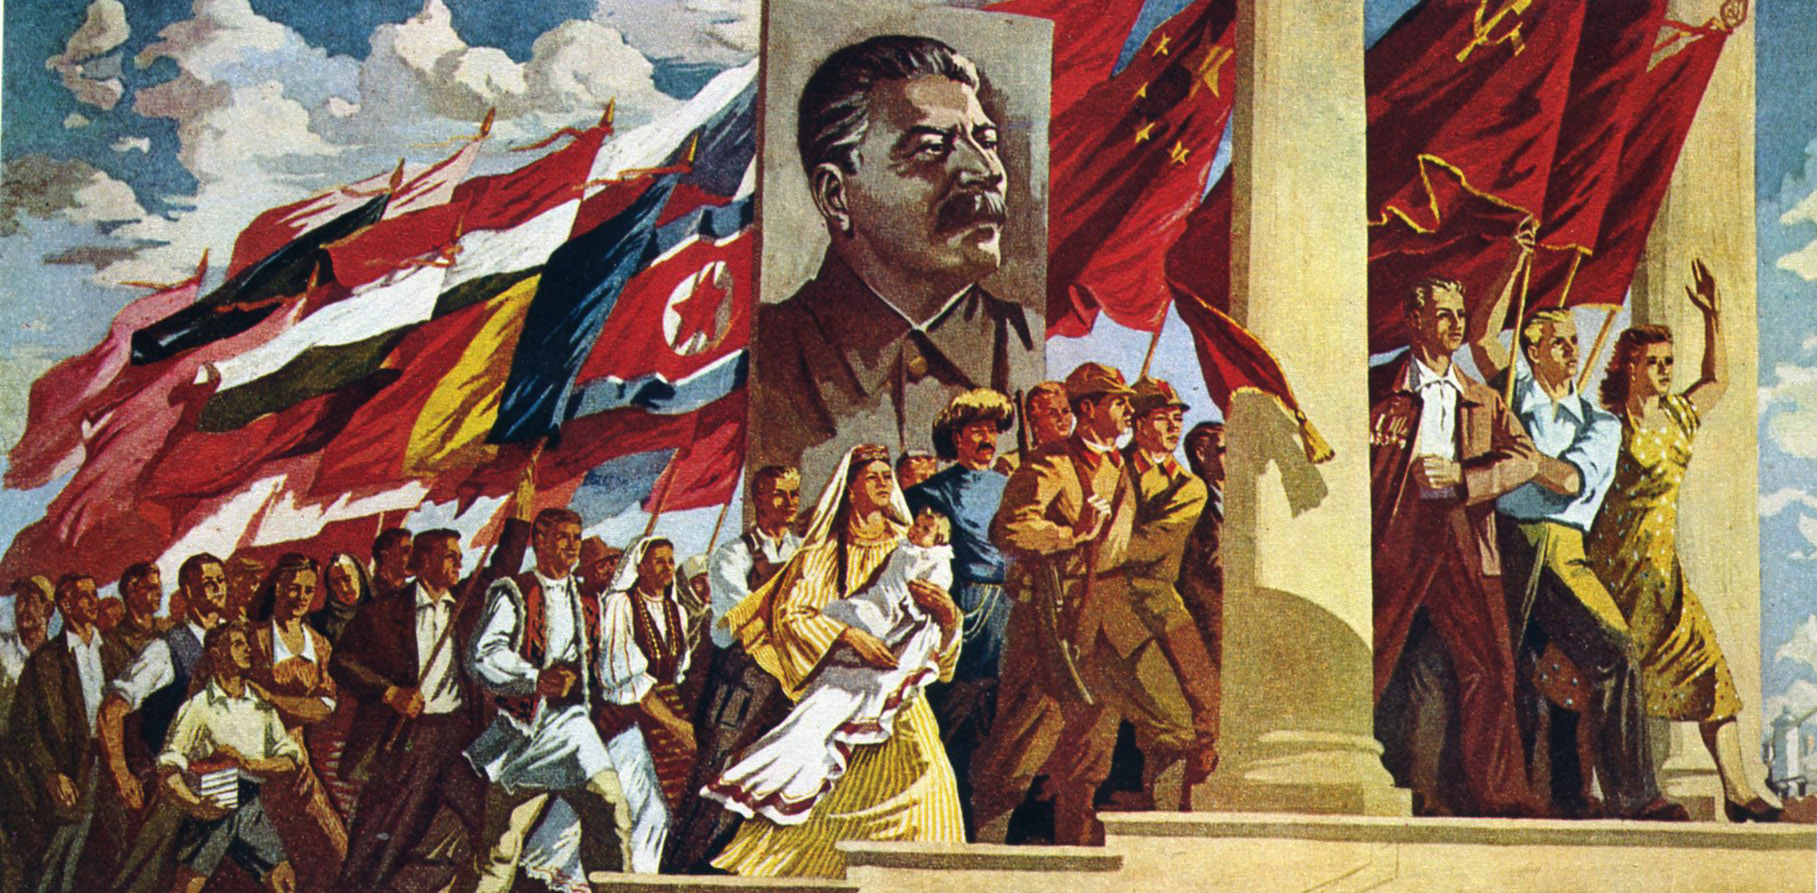 socialist realism English: socialist realism is a teleologically-oriented style of realistic art which has as its purpose the furtherance of the goals of socialism and communism although related, it should not be confused with social realism , a type of art that realistically depicts subjects of social concern.